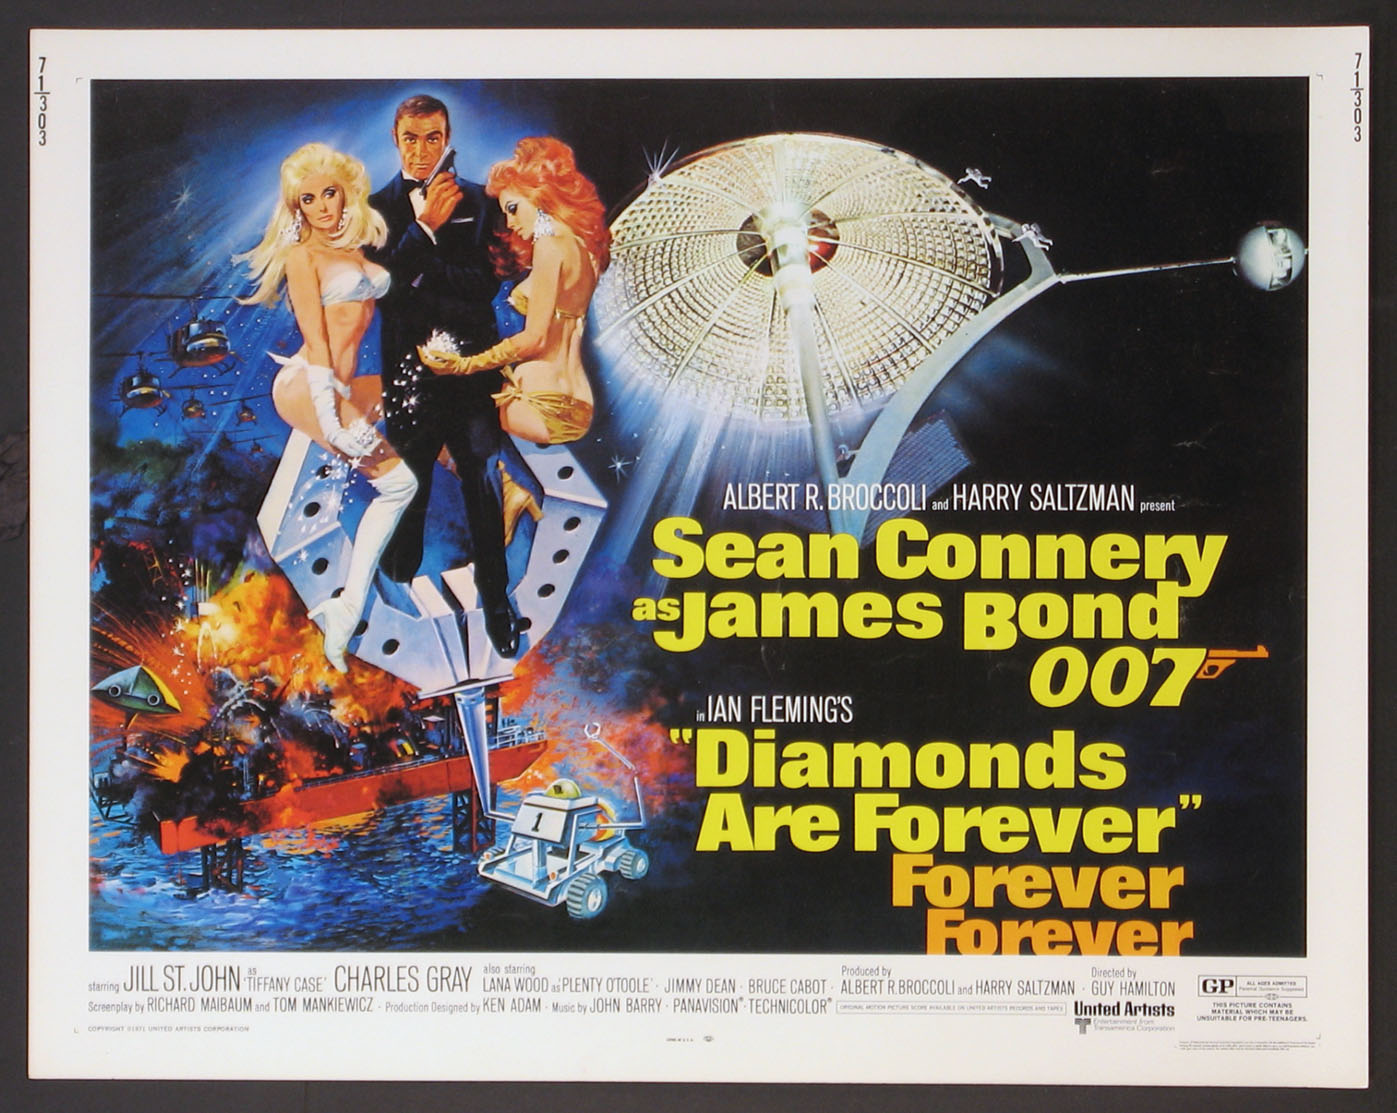 DIAMONDS ARE FOREVER (James Bond) @ FilmPosters.com